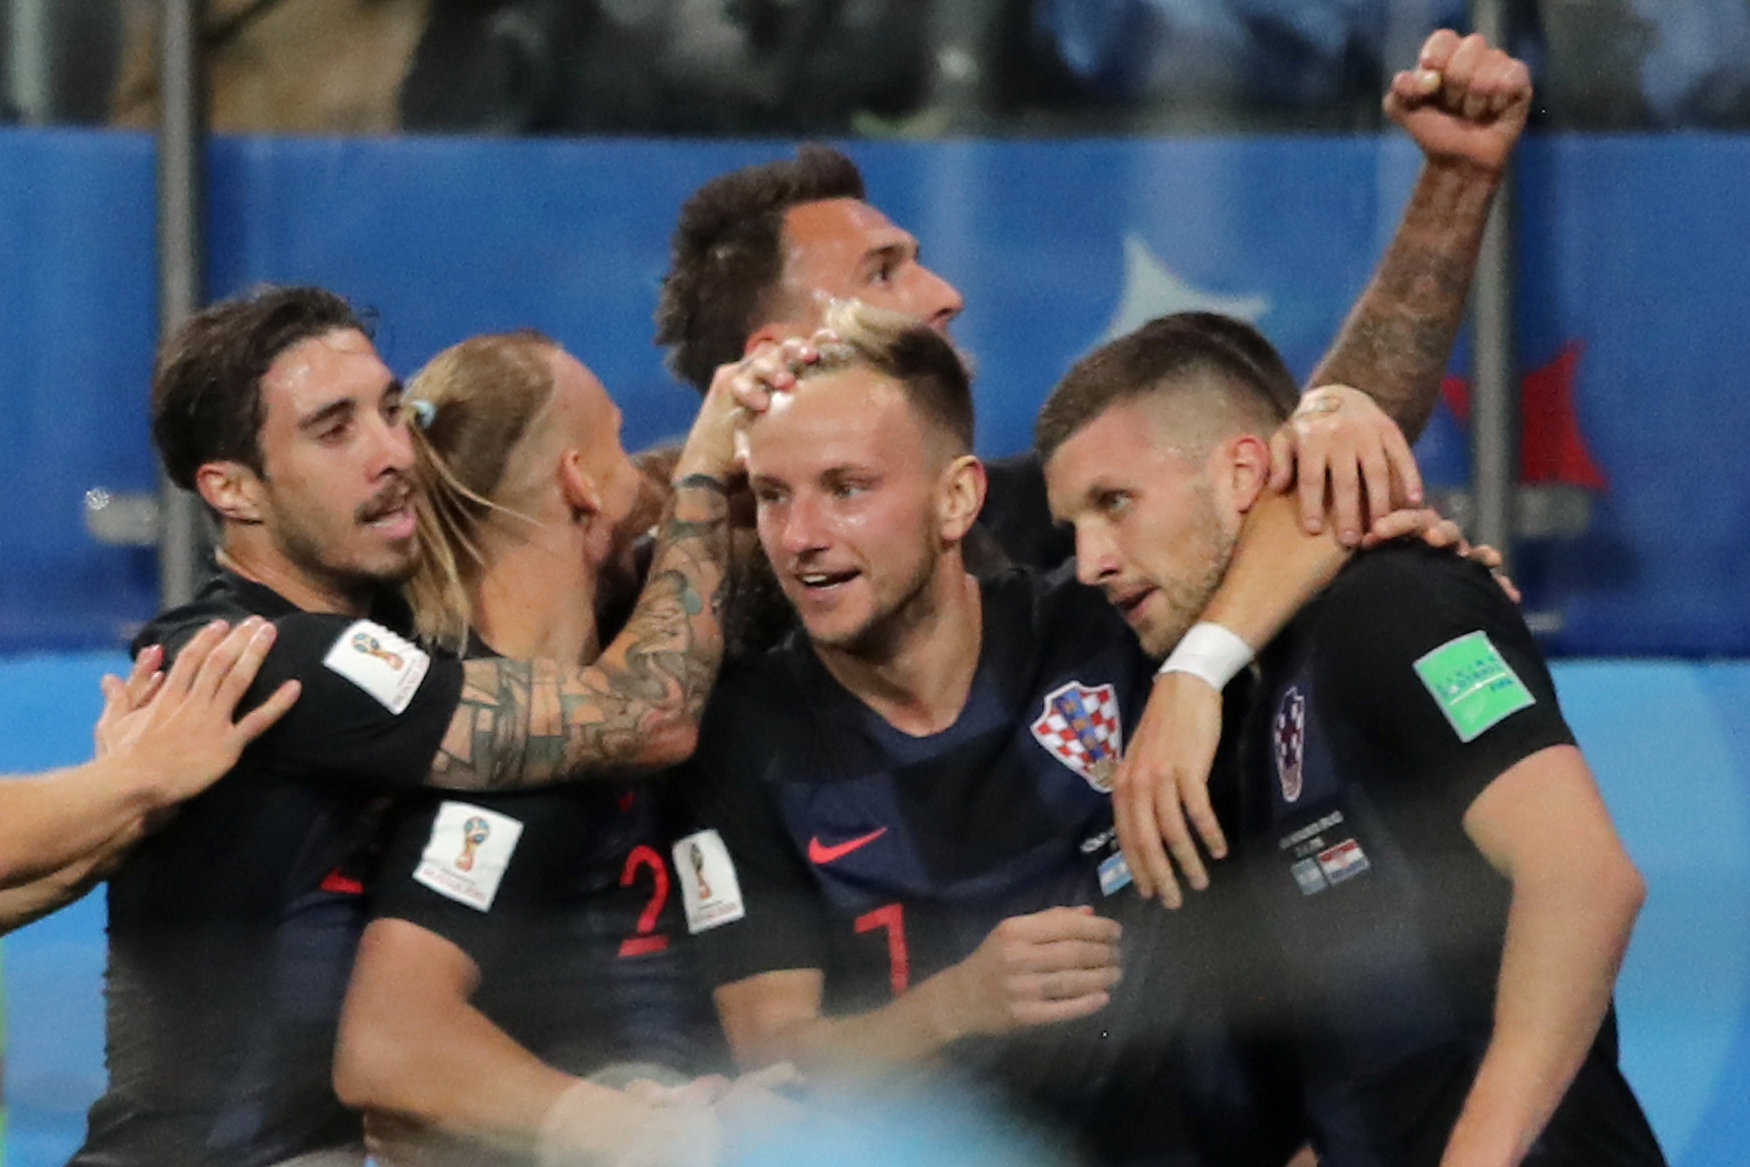 2018-06-21T191454Z_1140068476_RC199989B010_RTRMADP_3_SOCCER-WORLDCUP-ARG-CRO